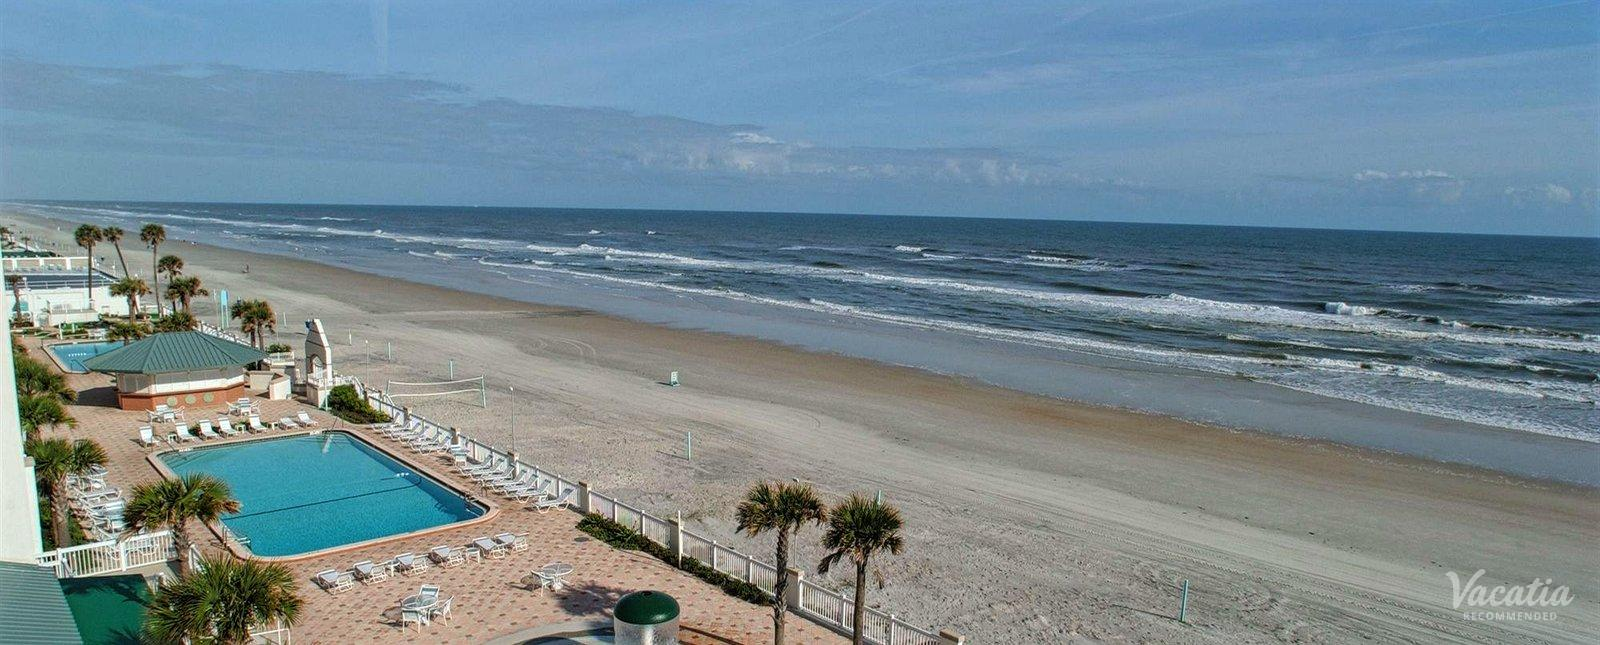 Daytona Beach Resort & Conference Center Pool